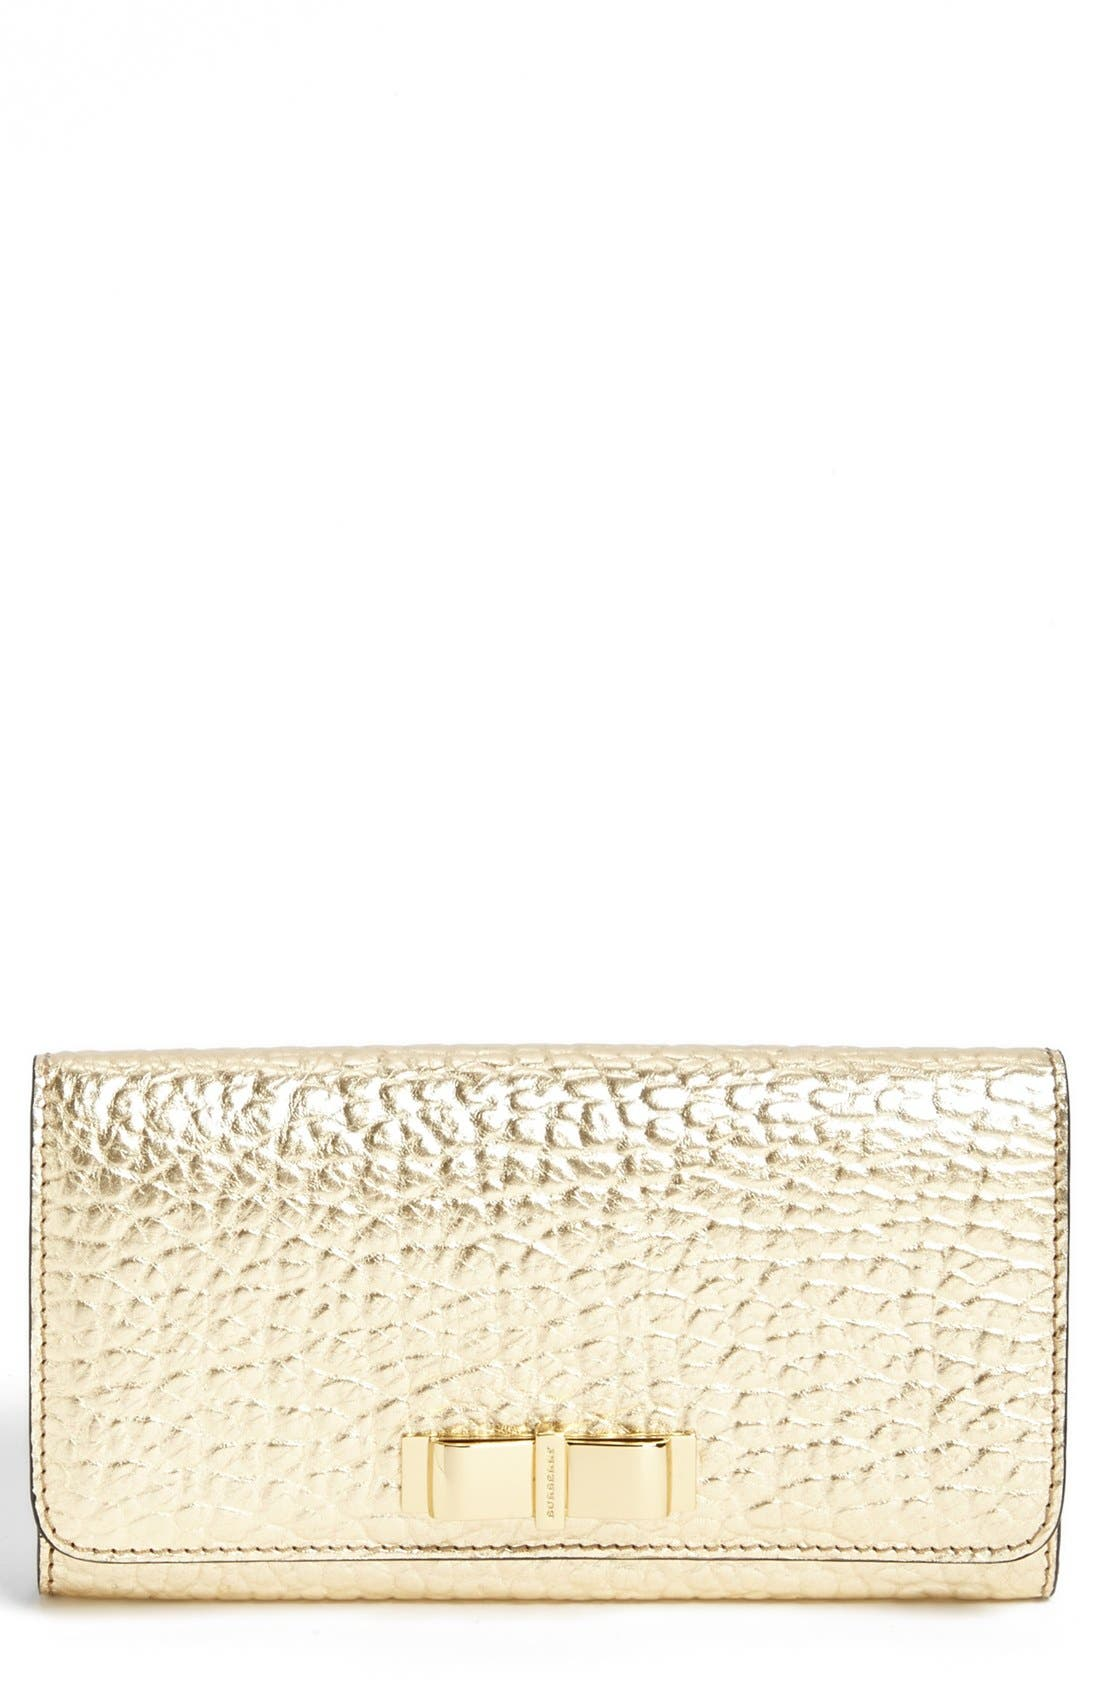 Main Image - Burberry 'Penrose' Bow Leather Wallet